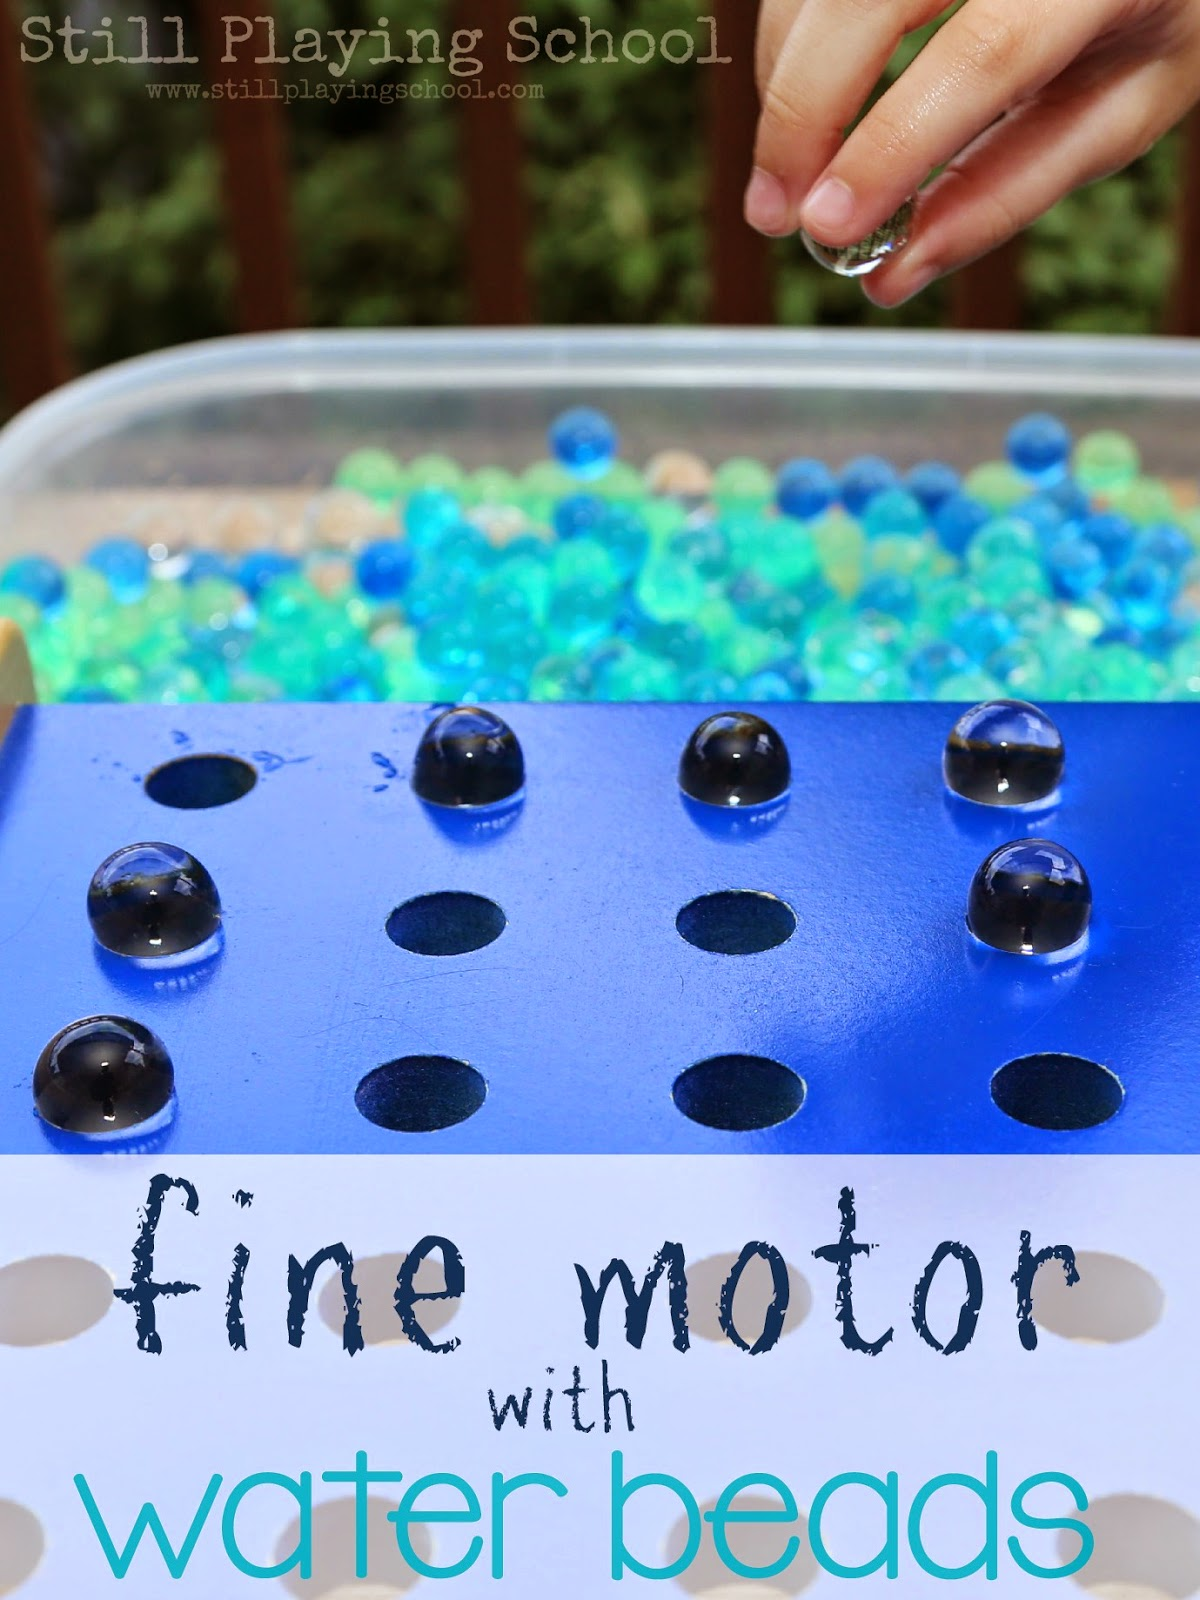 Ideas to practice fine motor skills using water beads for kids!